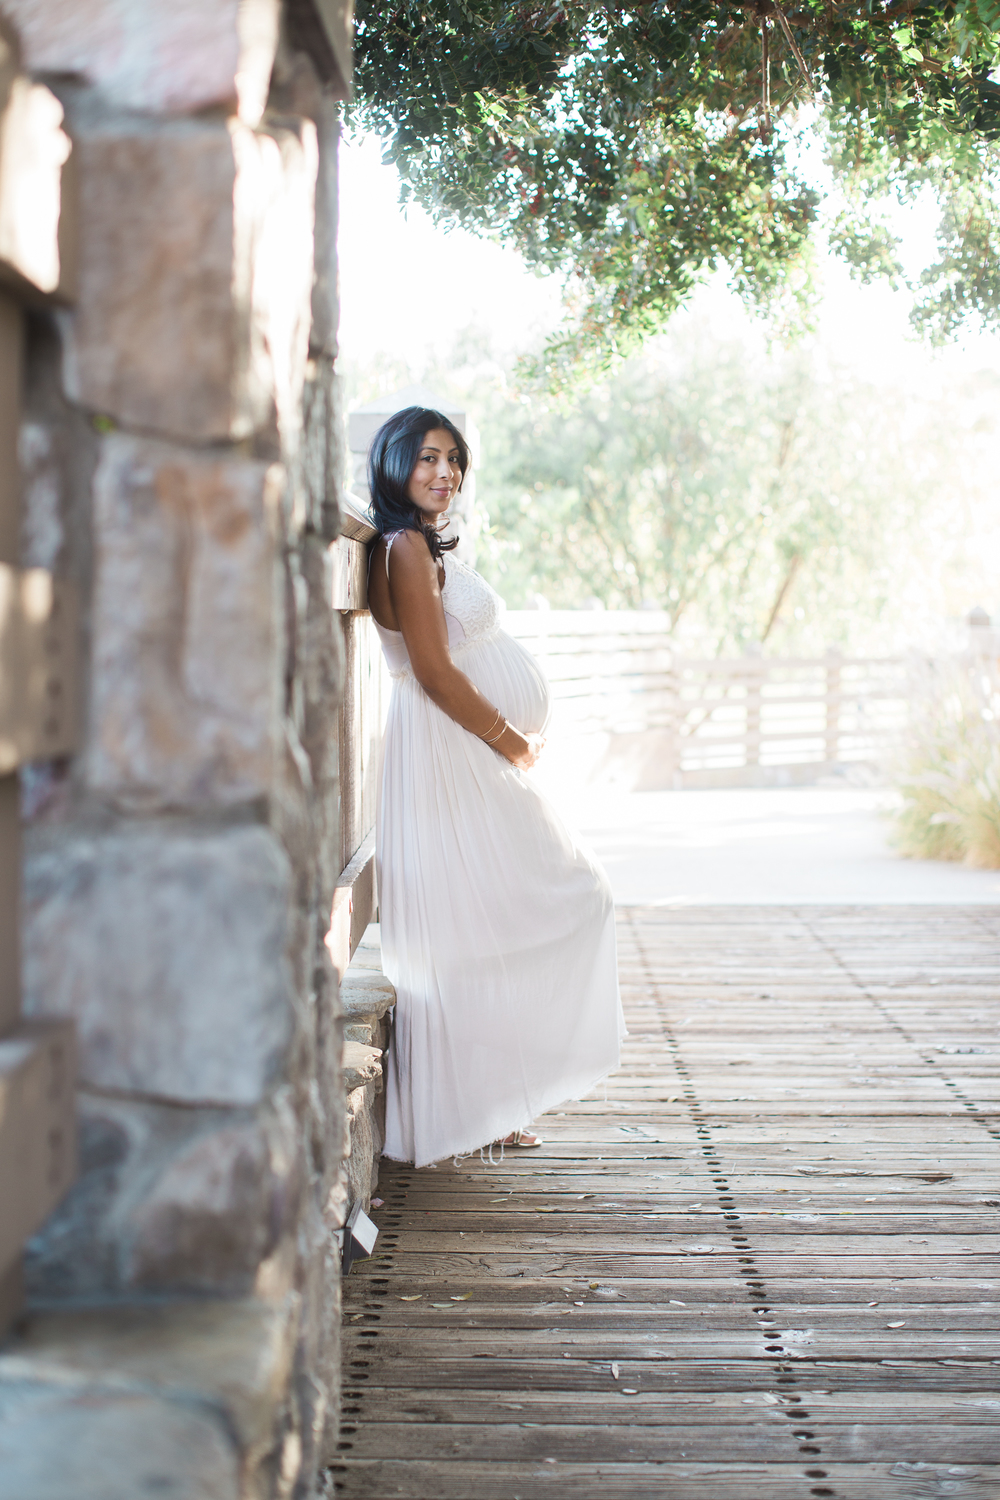 Marcella_Maternity_Cerritos_BrandonJFerlin_Photography-35.jpg